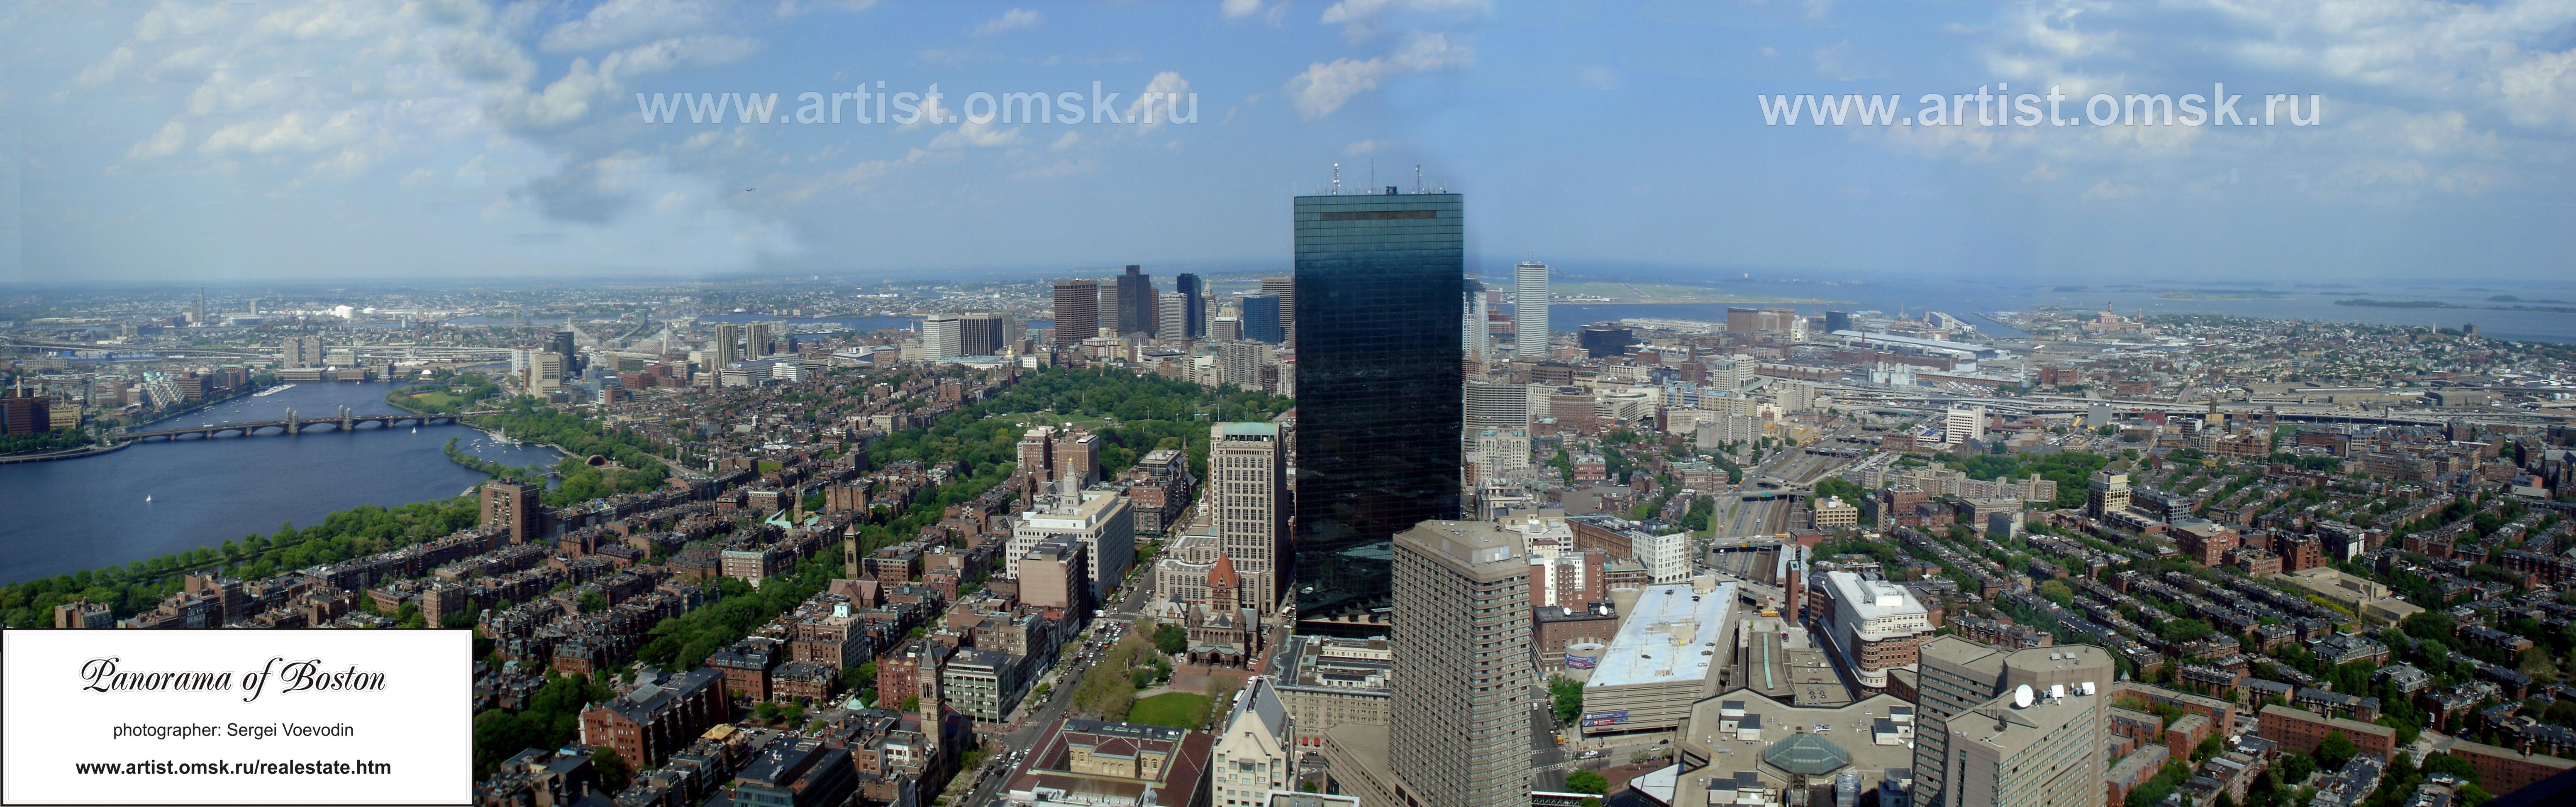 Panorama of Boston